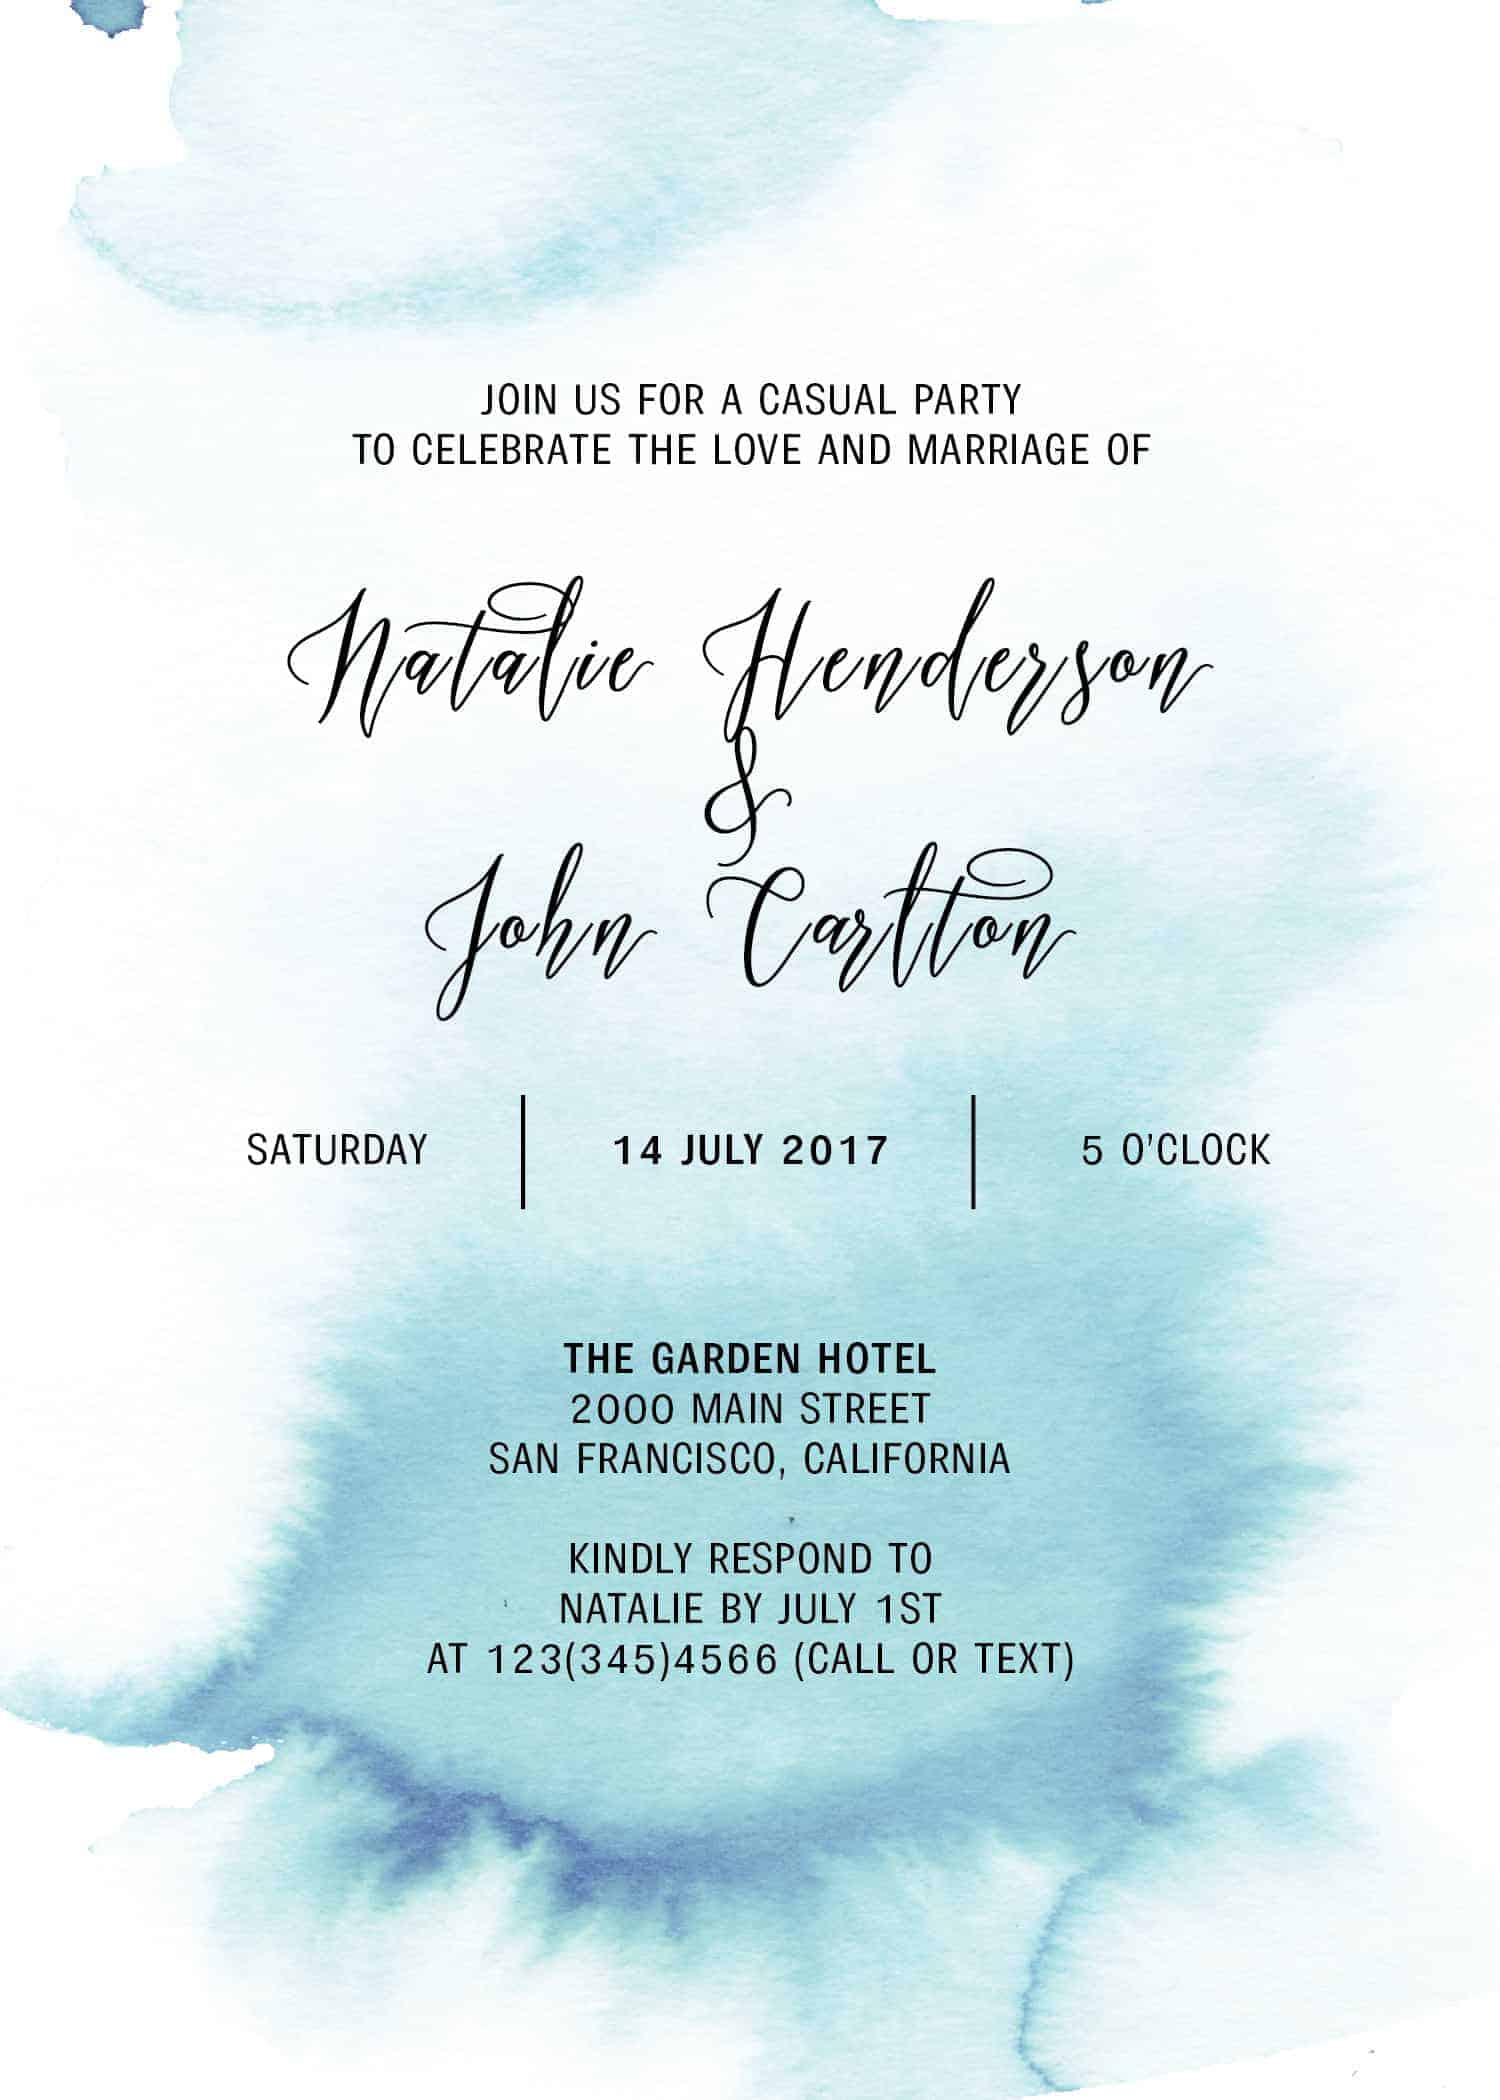 Elopement Reception Party Invitations, Casual Wedding Reception Cards, Printed Printable Wedding Party Card, Blue Watercolor Fog #247